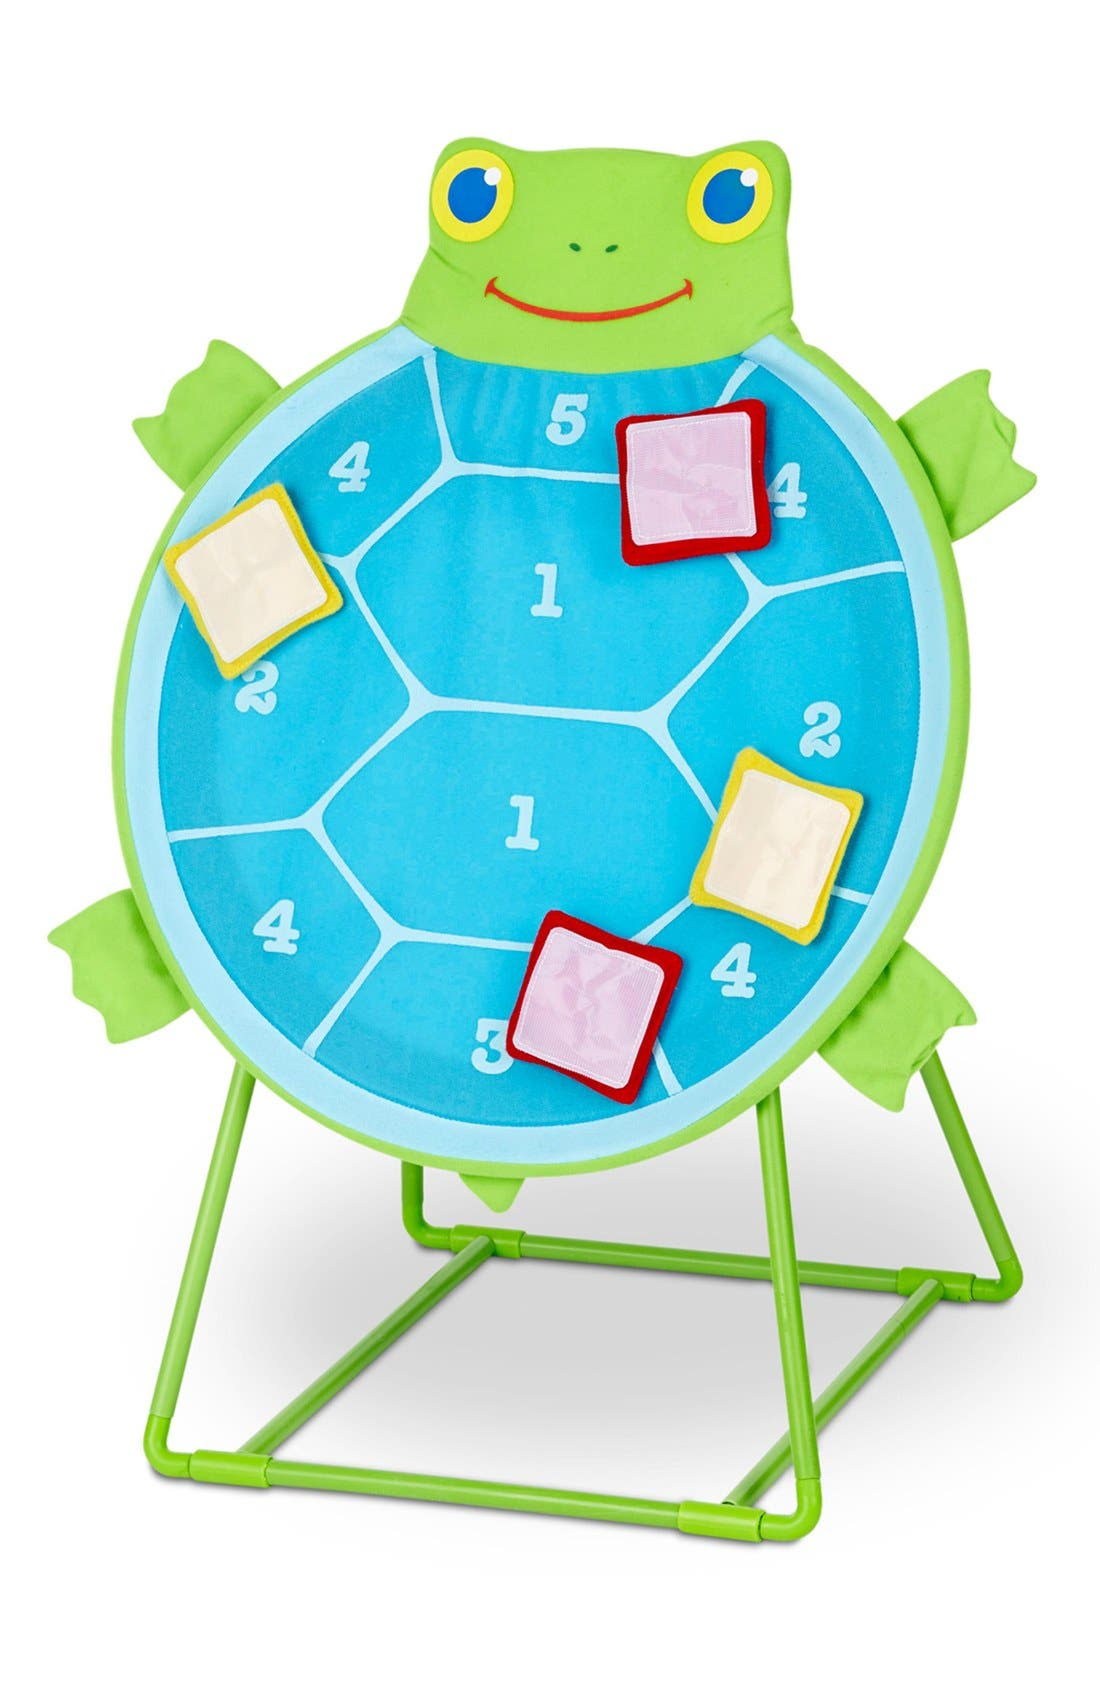 'Tootle Turtle' Target Game,                             Alternate thumbnail 3, color,                             GREEN